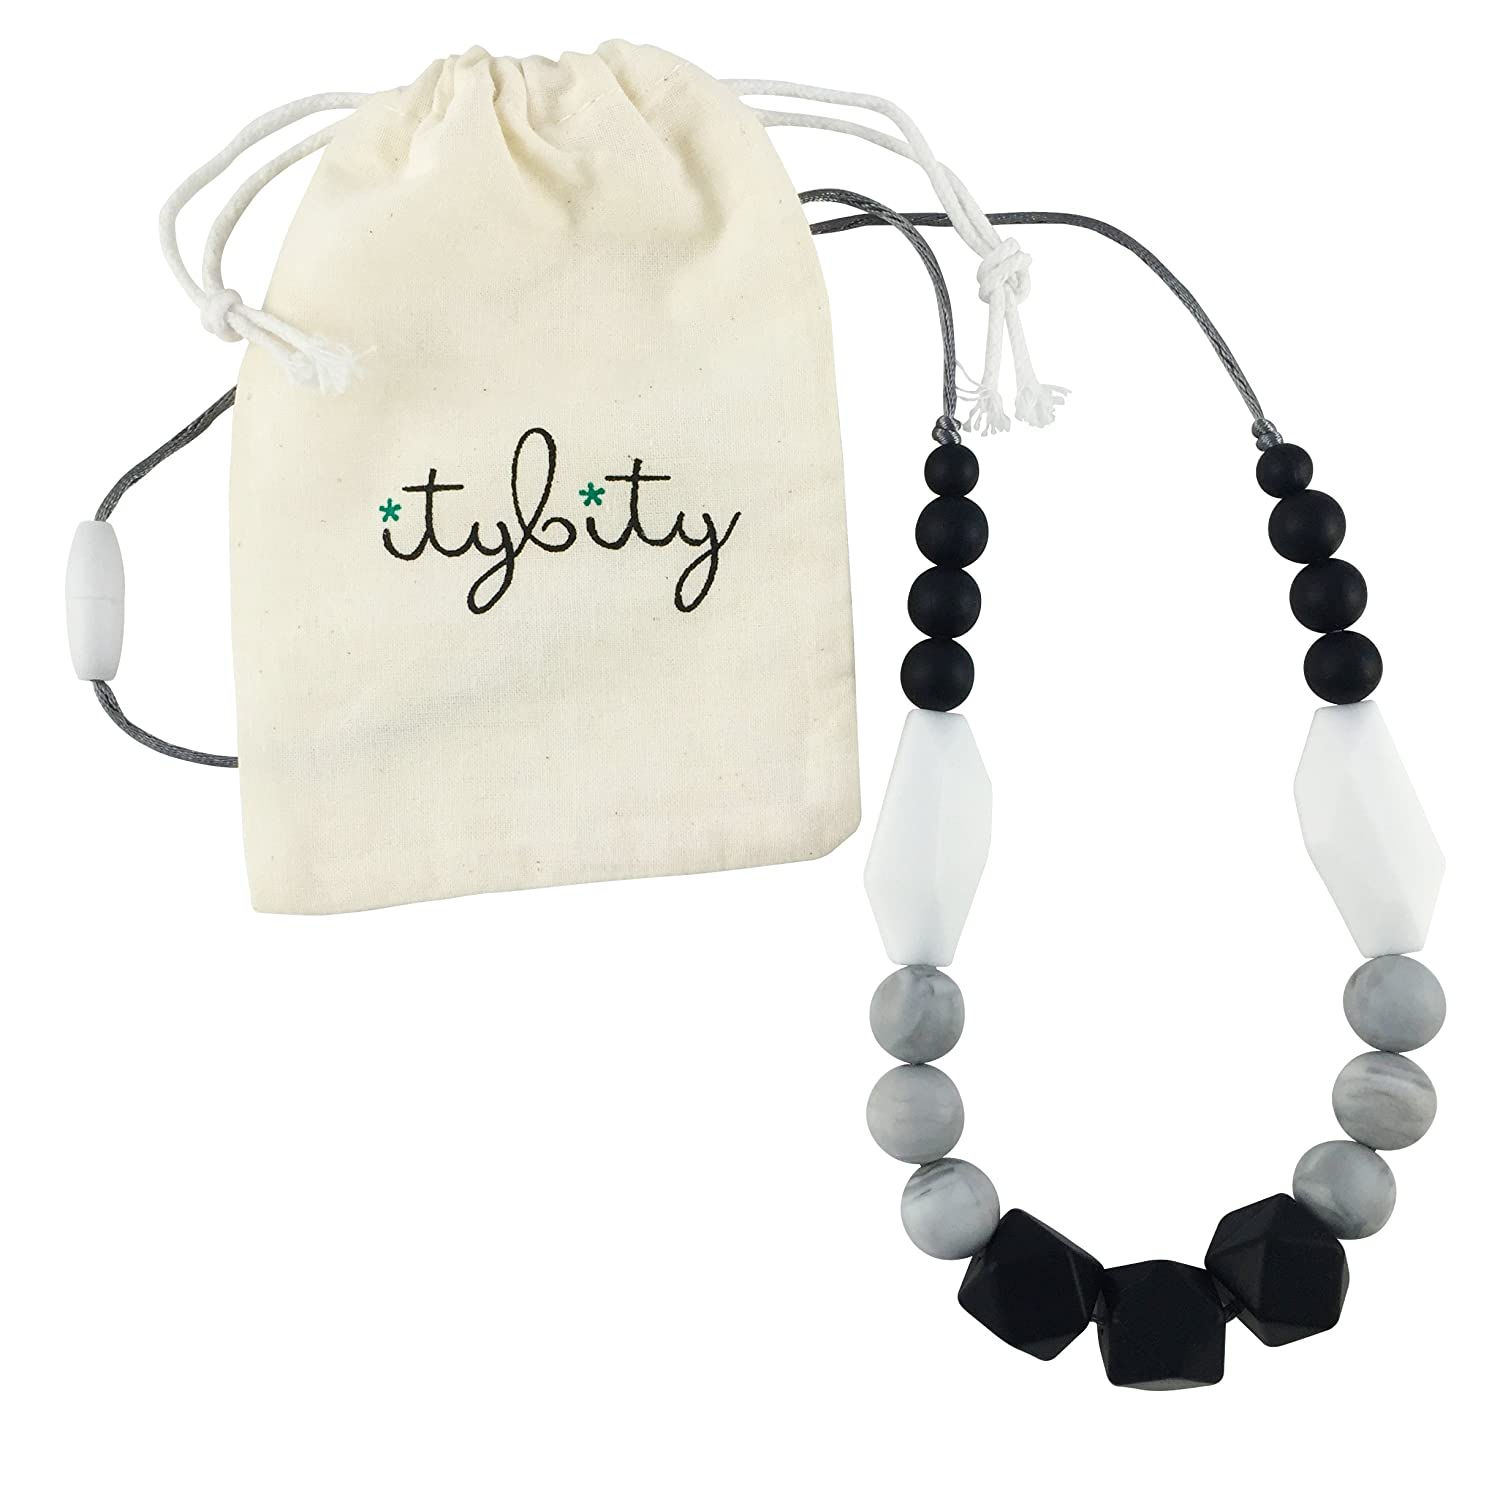 Baby Teething Necklace for Mom, Silicone Teething Beads, 100% BPA Free (Gray, Mint, White, Gray) Itybity